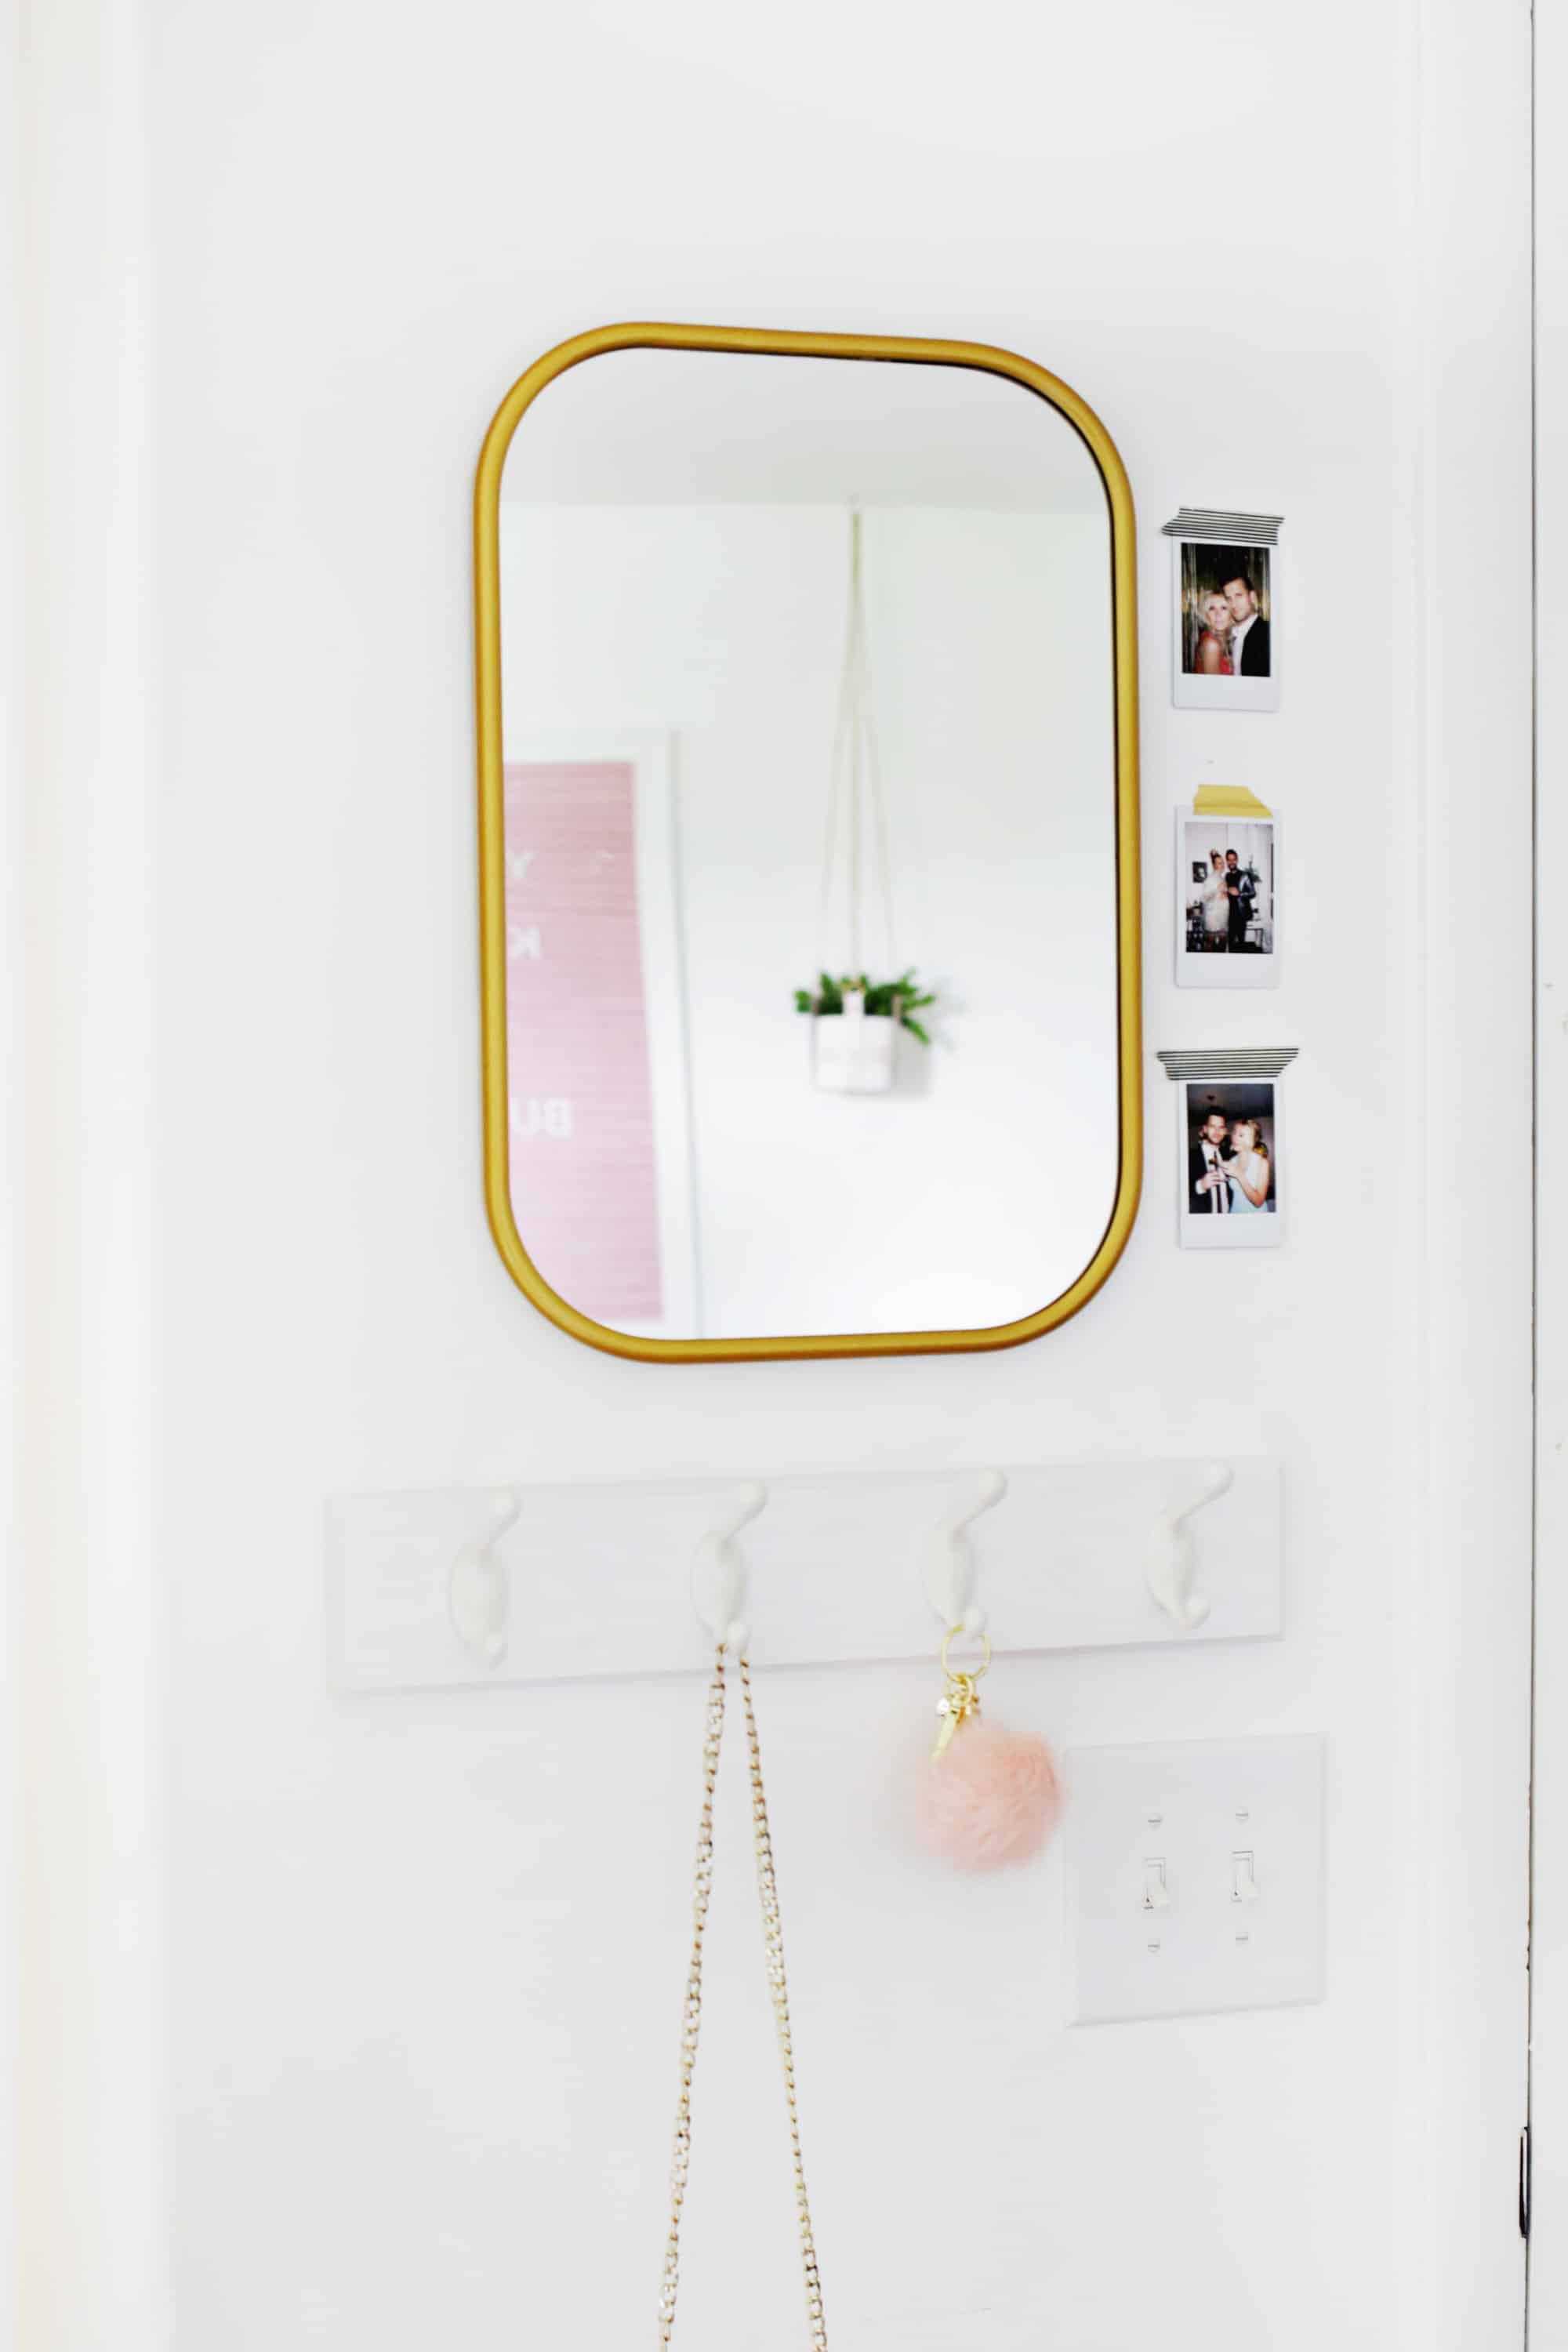 Mirrors Can Make Such An Impact On A E But How Do You Decide Where To Put Them It Feels Little More Obvious Which Spots In Our Home Would Benefit